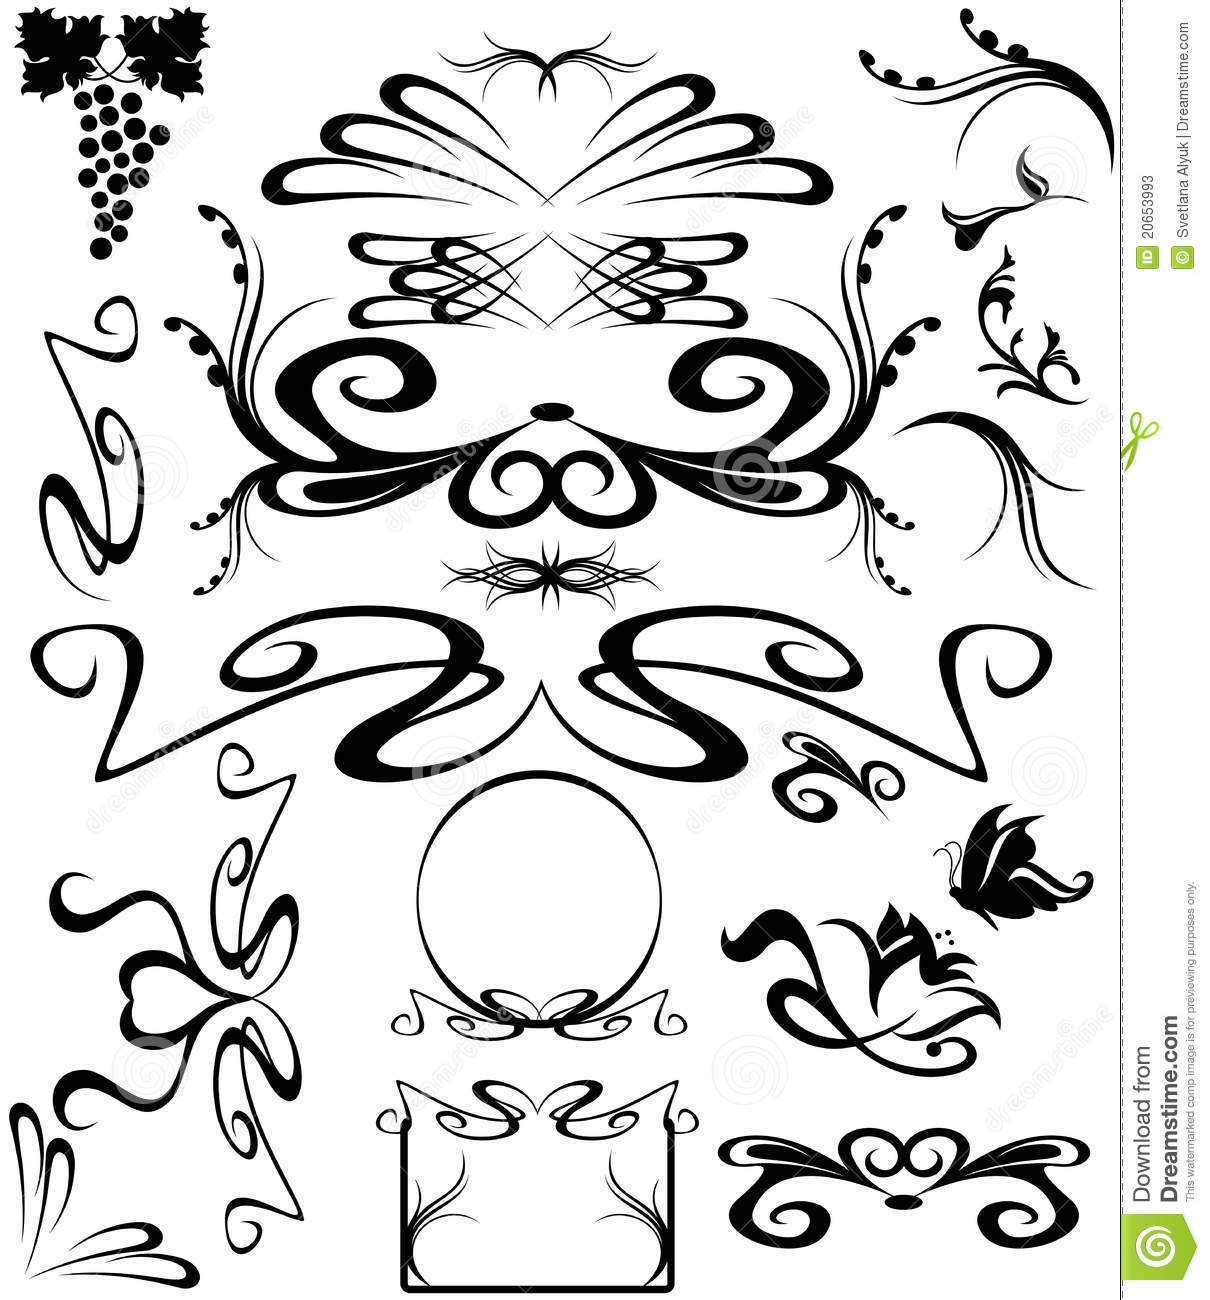 Art nouveau vector stock vector illustration of isolated for Art nouveau shapes